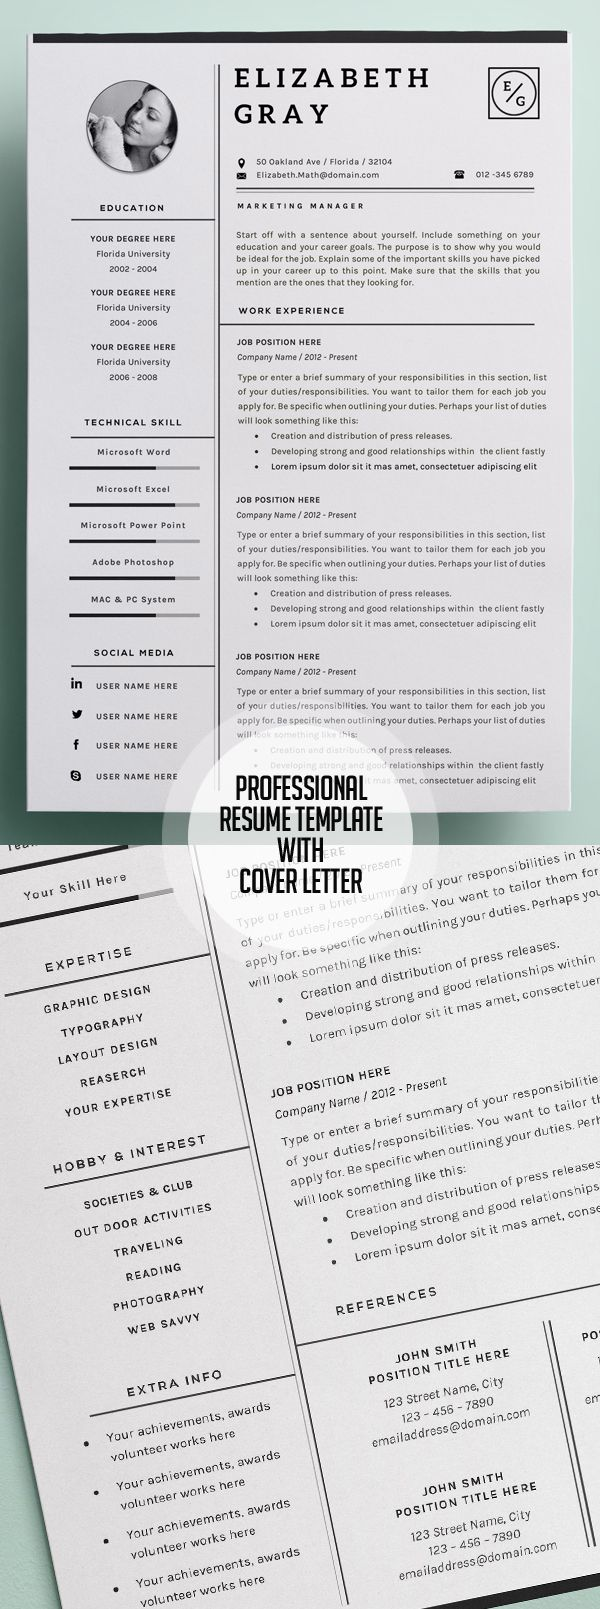 Opposenewapstandardsus  Ravishing  Resume Ideas On Pinterest  Resume Resume Templates And  With Heavenly Professional And Modern Resume Template With Page Cover Cvtemplate With Lovely Objective For Resume Customer Service Also Resume Basics In Addition Resume For Warehouse And Best Resume Software As Well As Resumes For Free Additionally Functional Resume Templates From Pinterestcom With Opposenewapstandardsus  Heavenly  Resume Ideas On Pinterest  Resume Resume Templates And  With Lovely Professional And Modern Resume Template With Page Cover Cvtemplate And Ravishing Objective For Resume Customer Service Also Resume Basics In Addition Resume For Warehouse From Pinterestcom